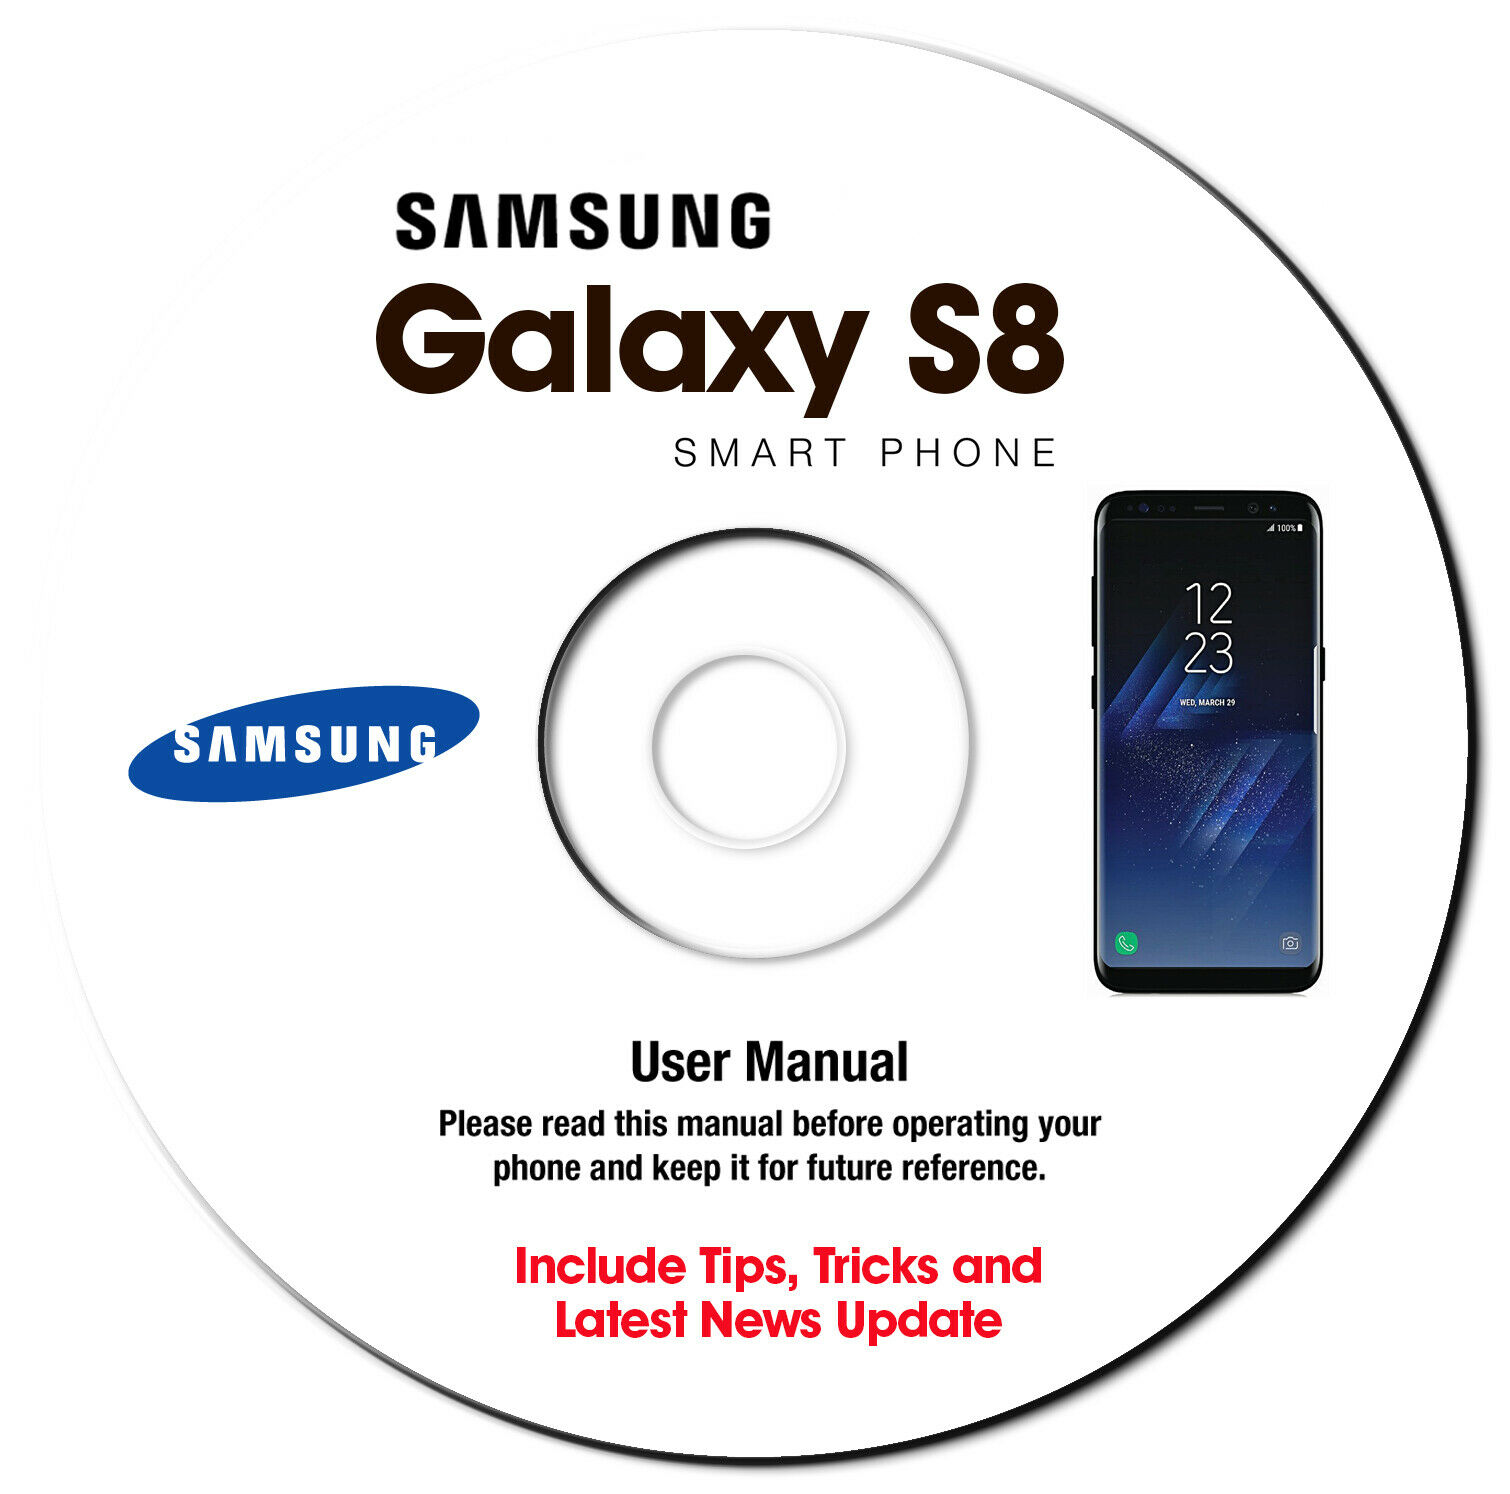 Samsung Galaxy S8-S8 Plus (SM-G955F-SM-G955FD) User Manual Guide CD - METRO PCS